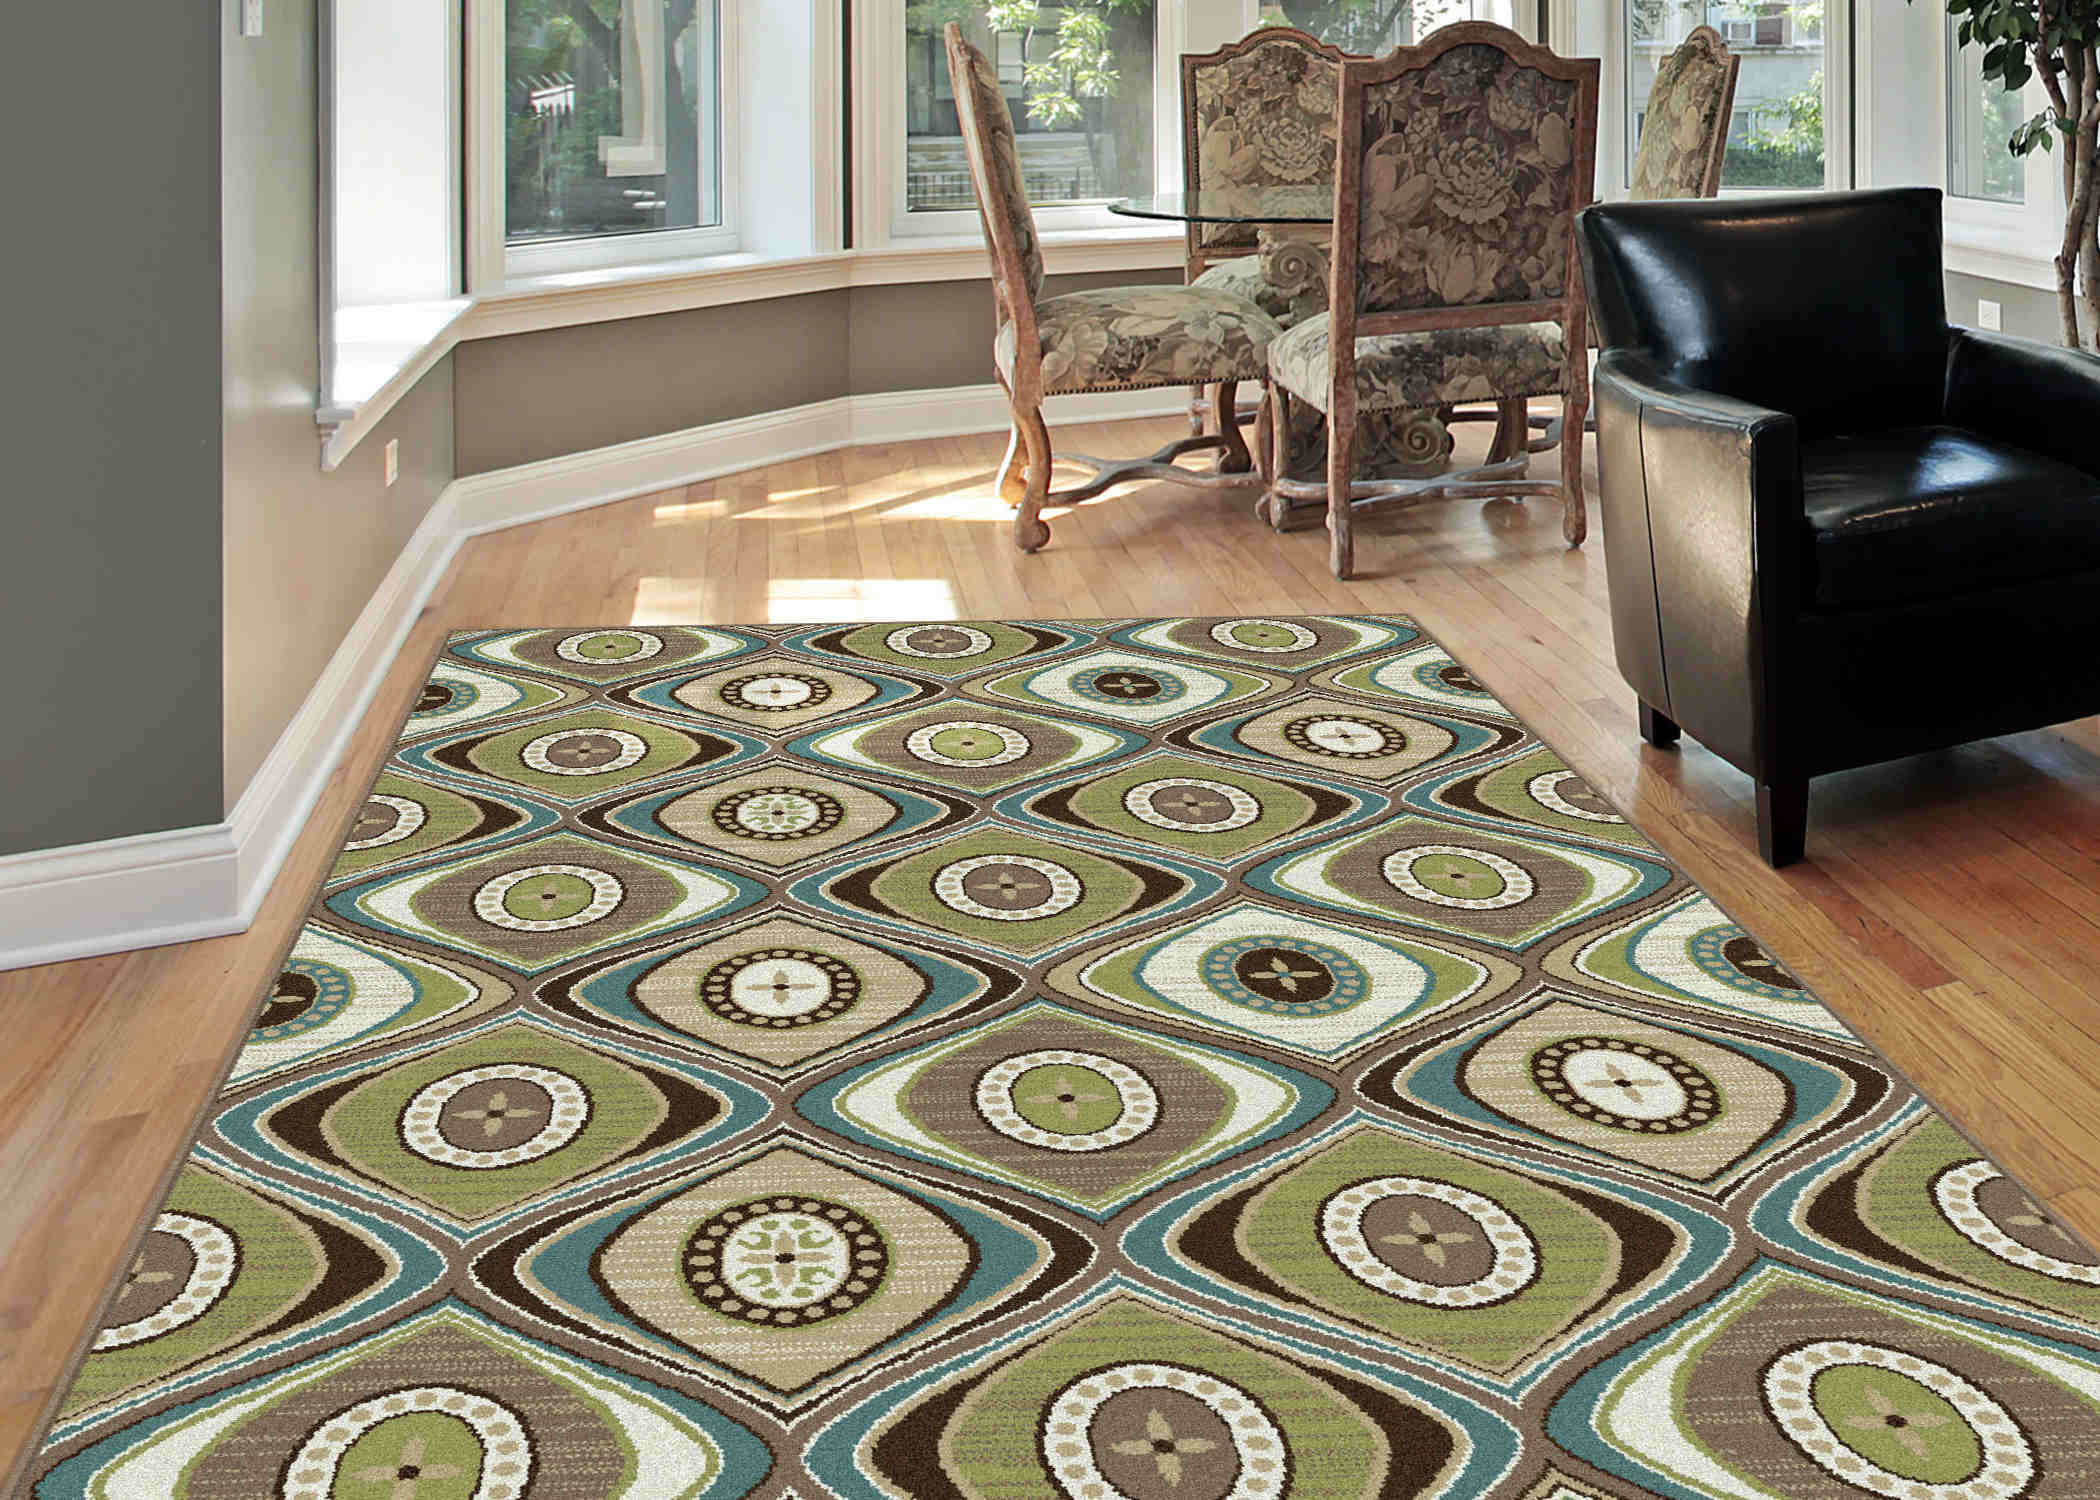 Deco Dco1028 Beige Transitional Area Rug